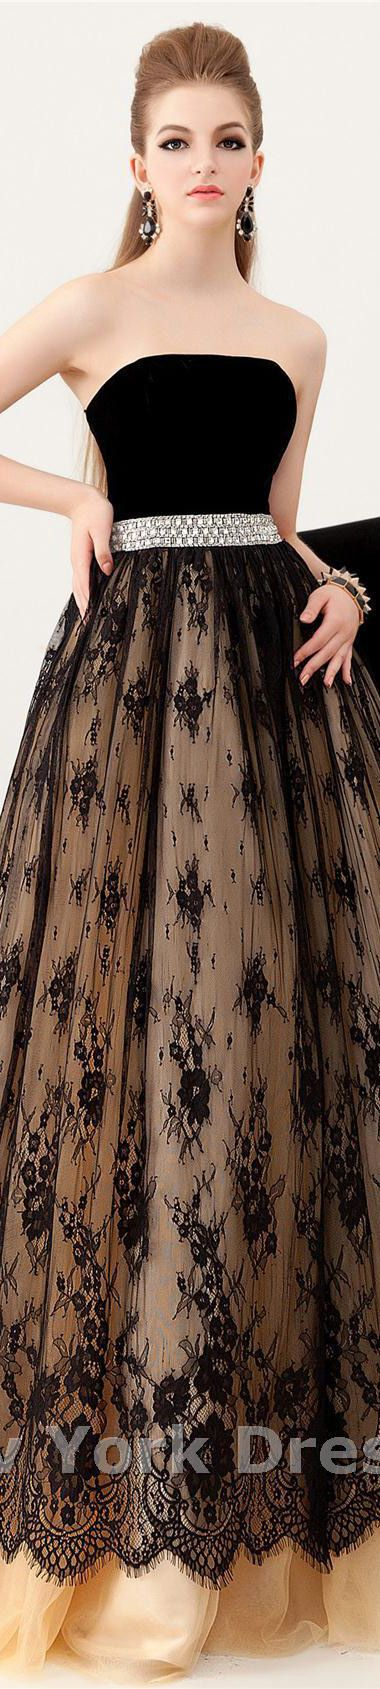 Angela and Alison design elegant dress black velvet bodice and pattern sheer overlay skirt. V